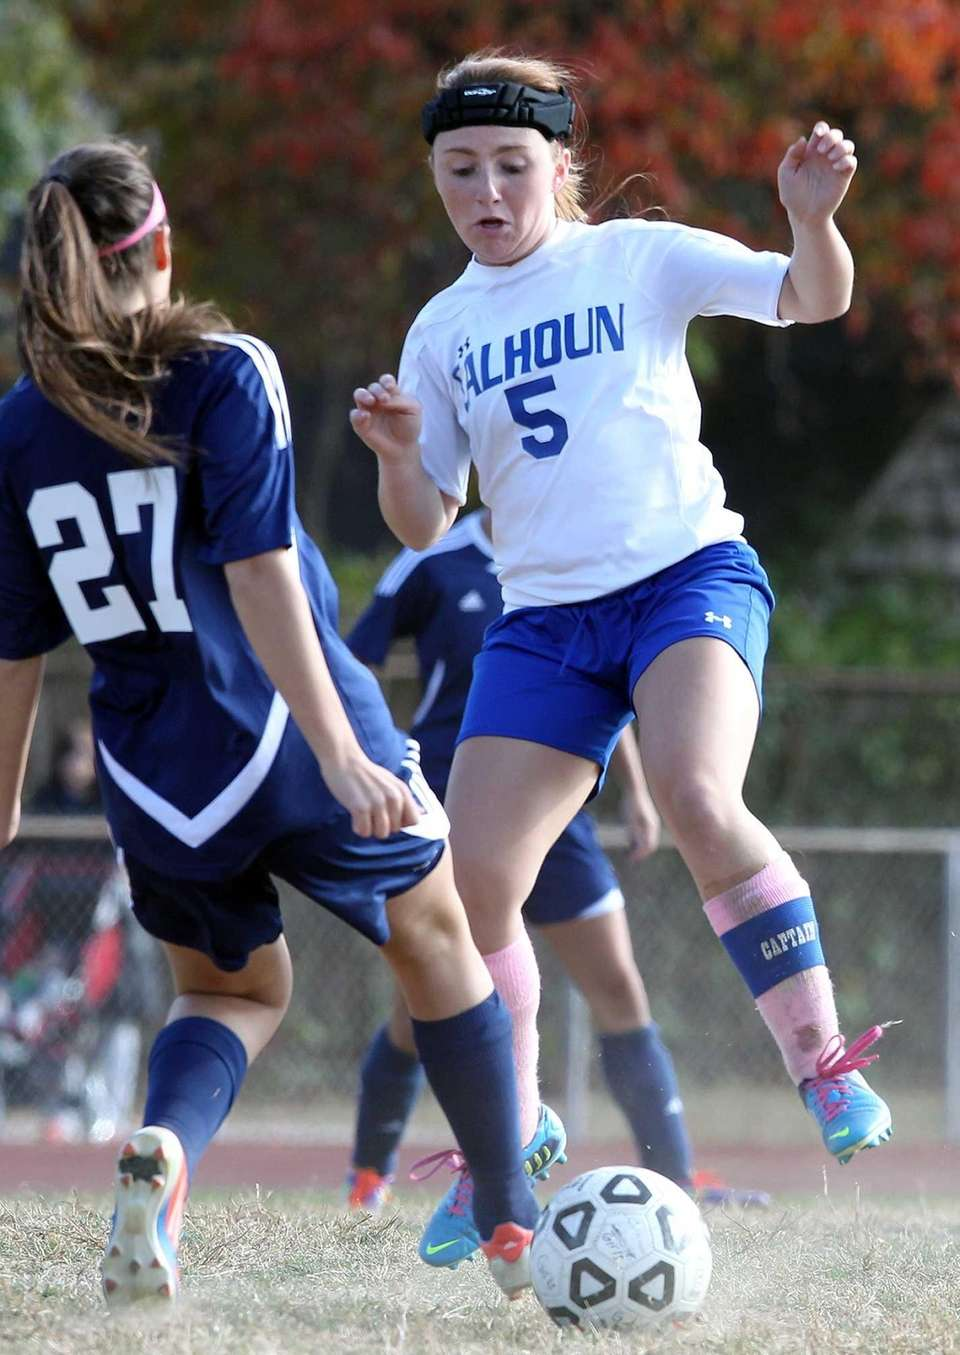 Calhoun's Jessica Foley goes for ball against JFK's